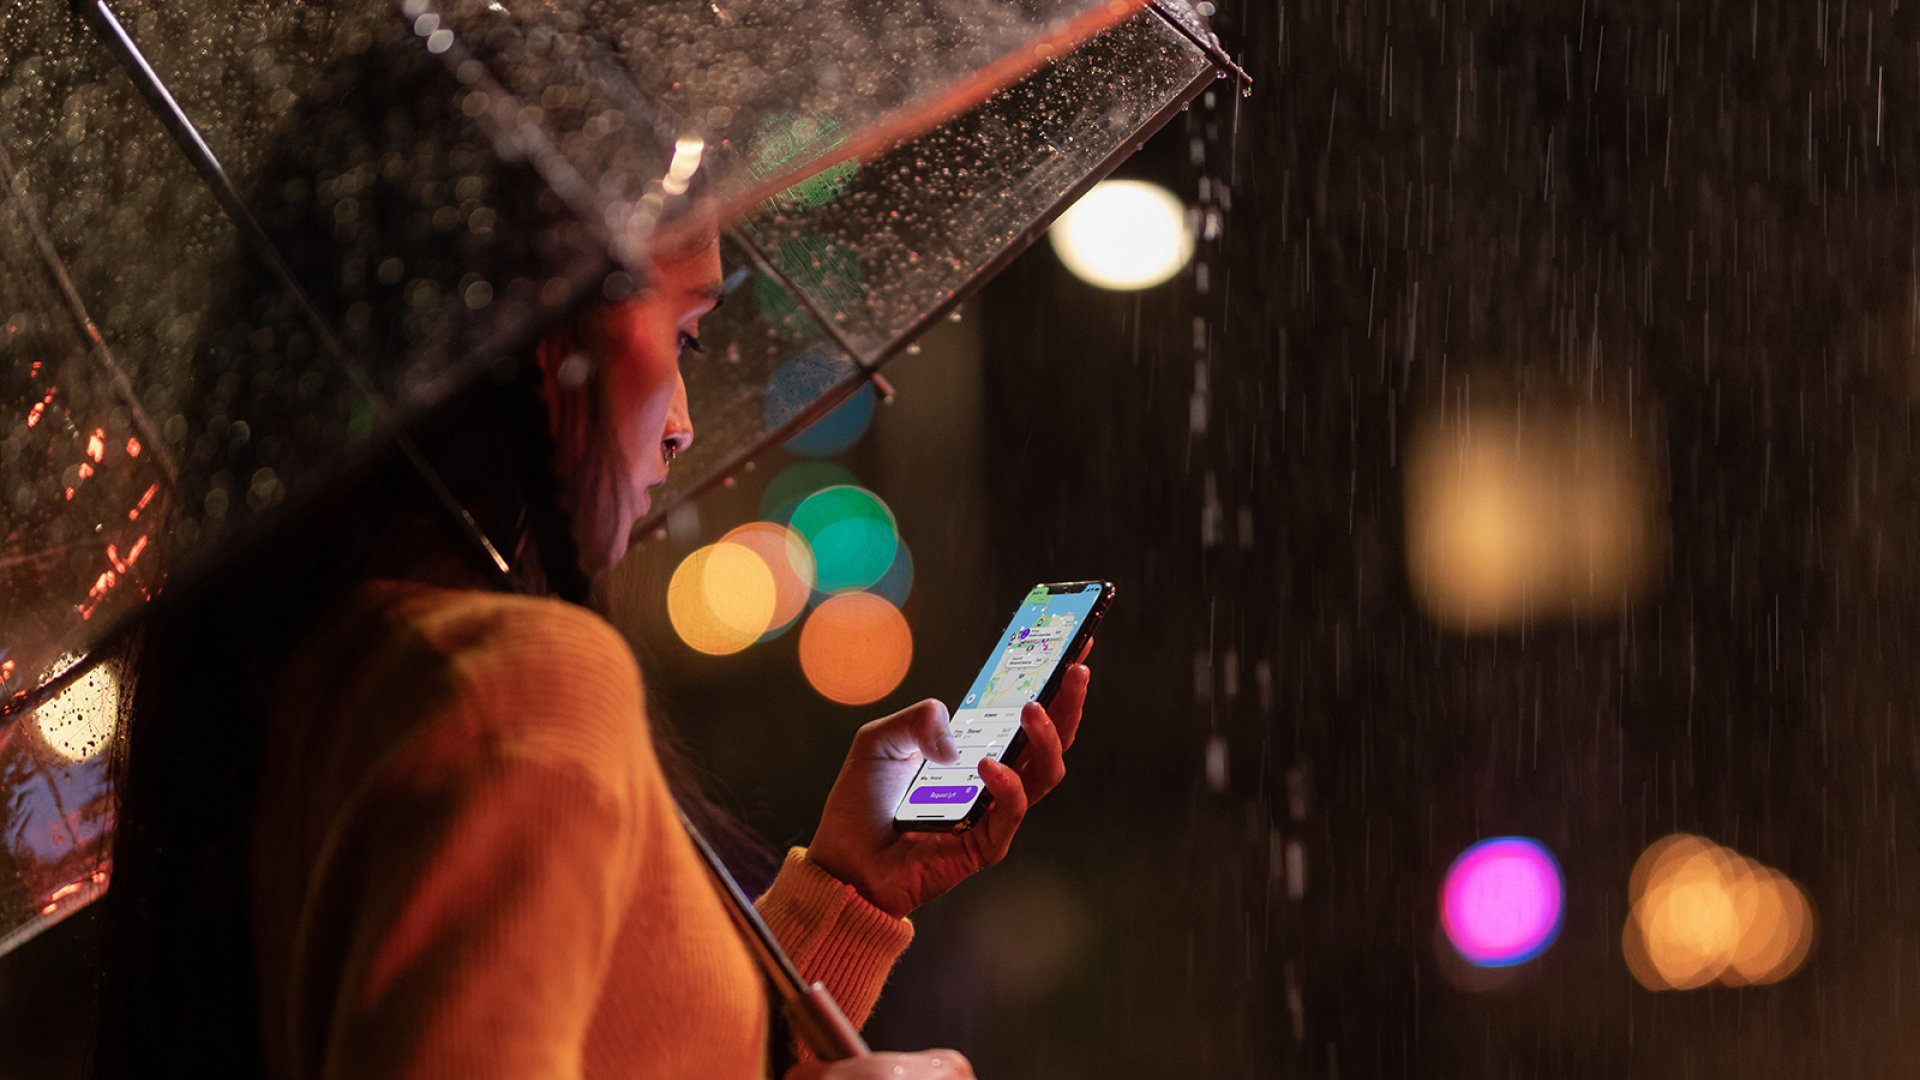 The Apple iPhone Xs Max can withstand more than just a rain shower.